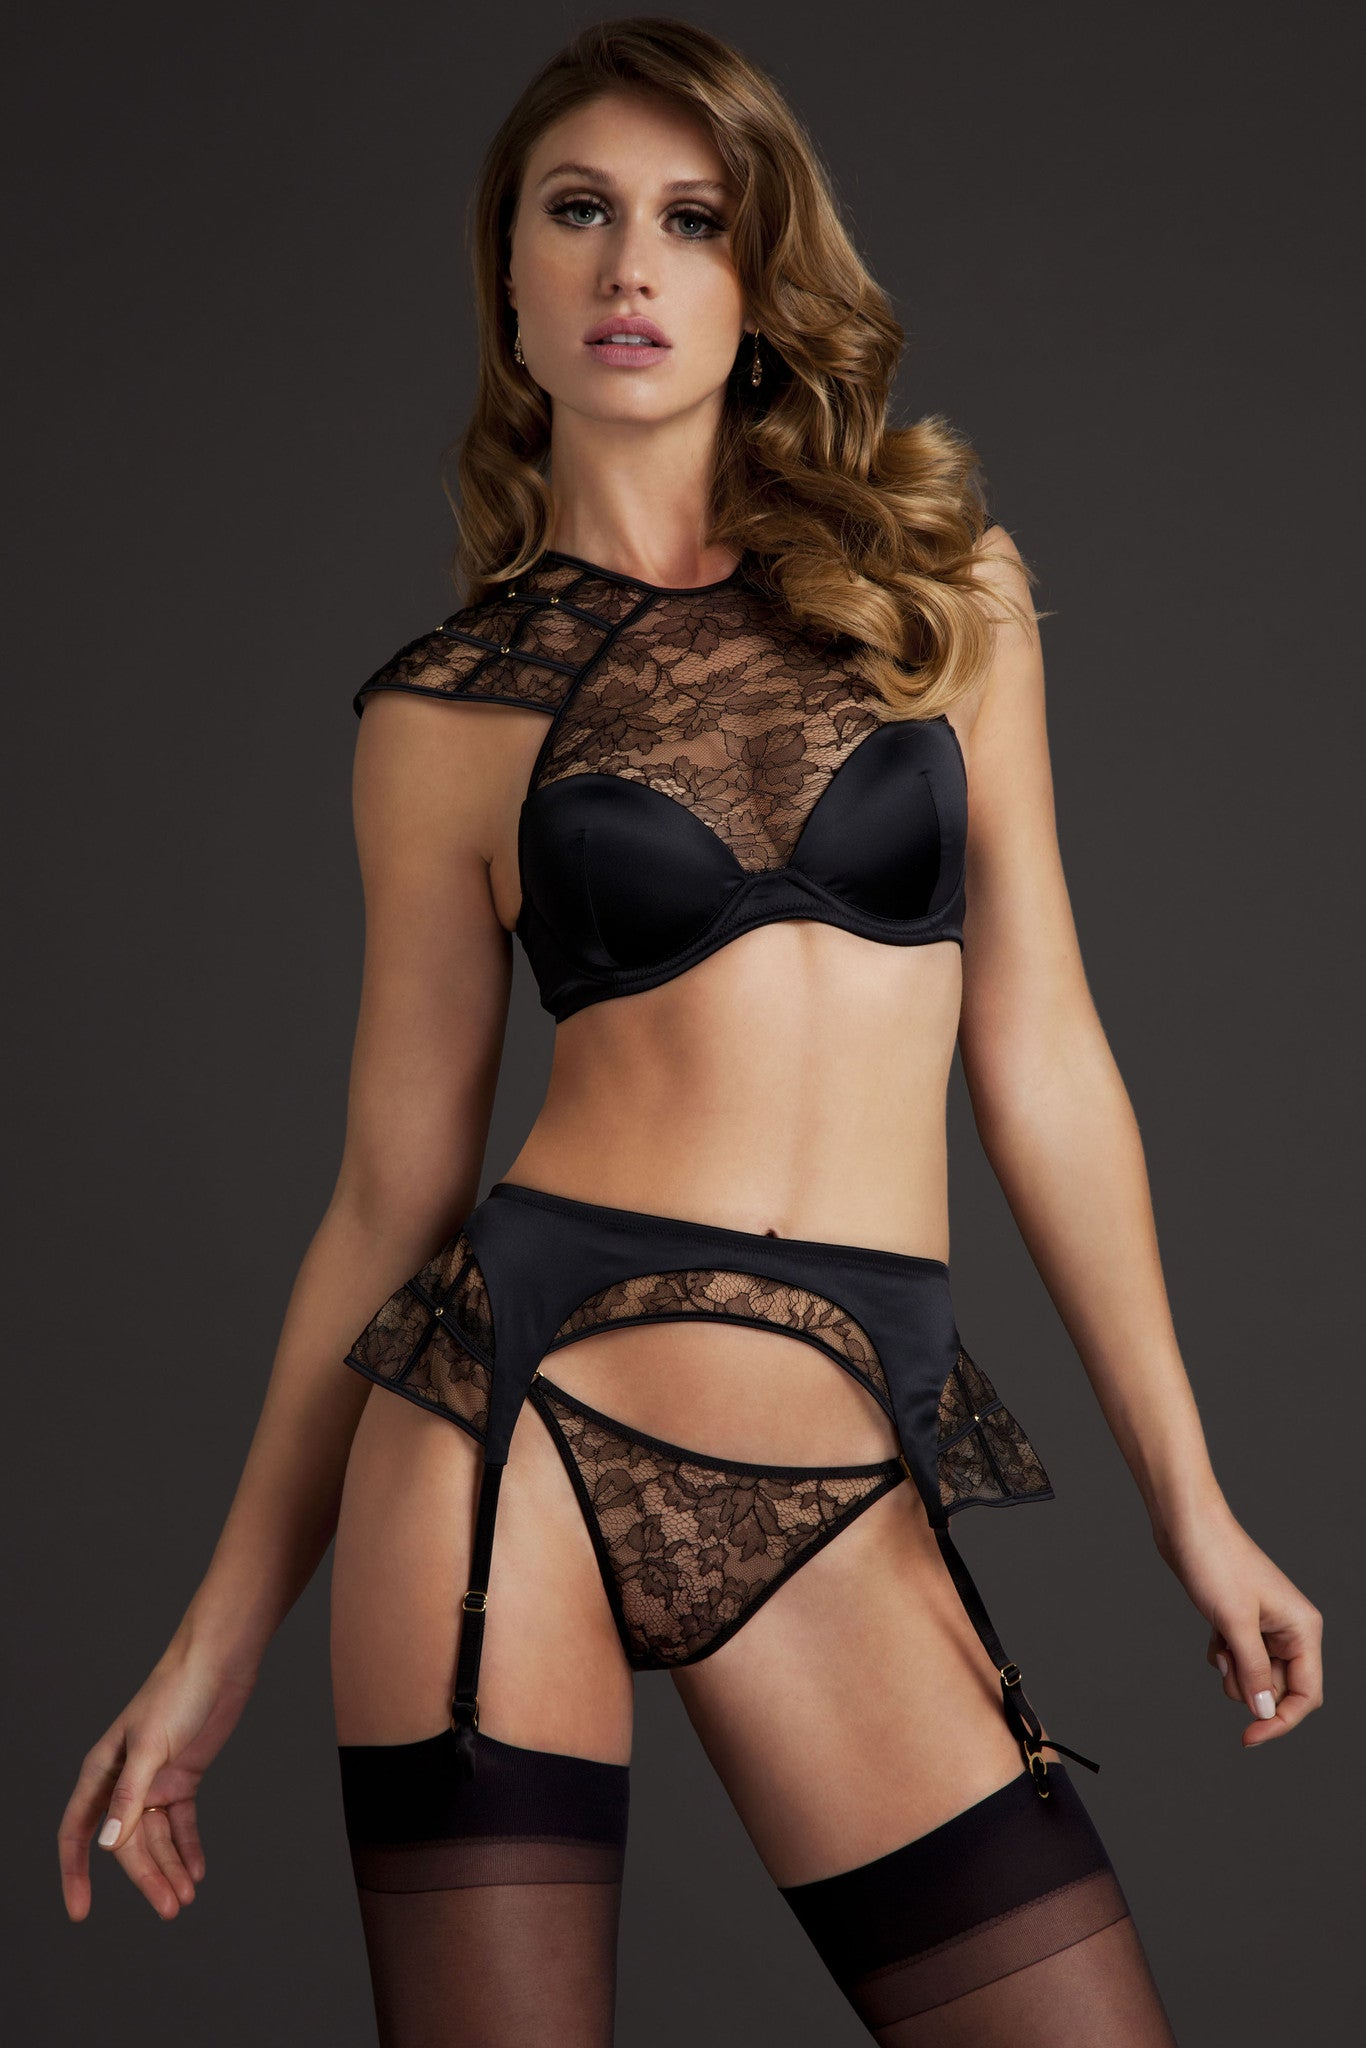 Xena Black lace high neck bra and luxury lingerie set